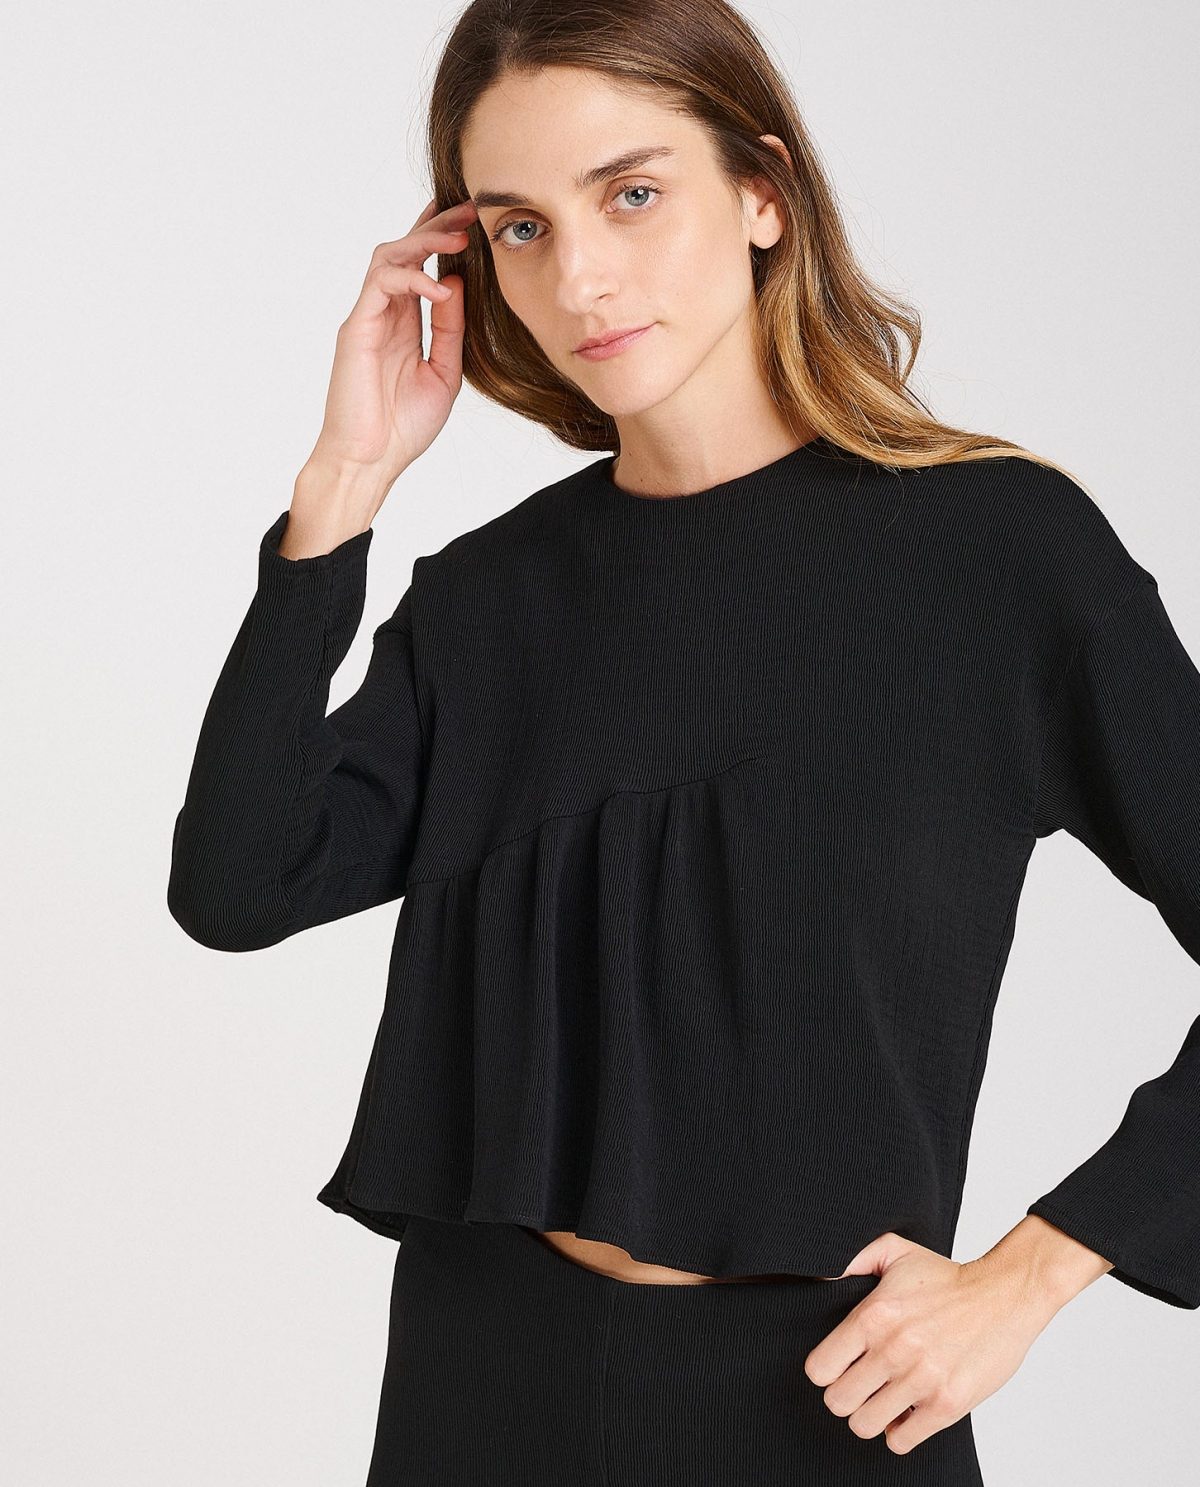 Cropped Top With Gathering